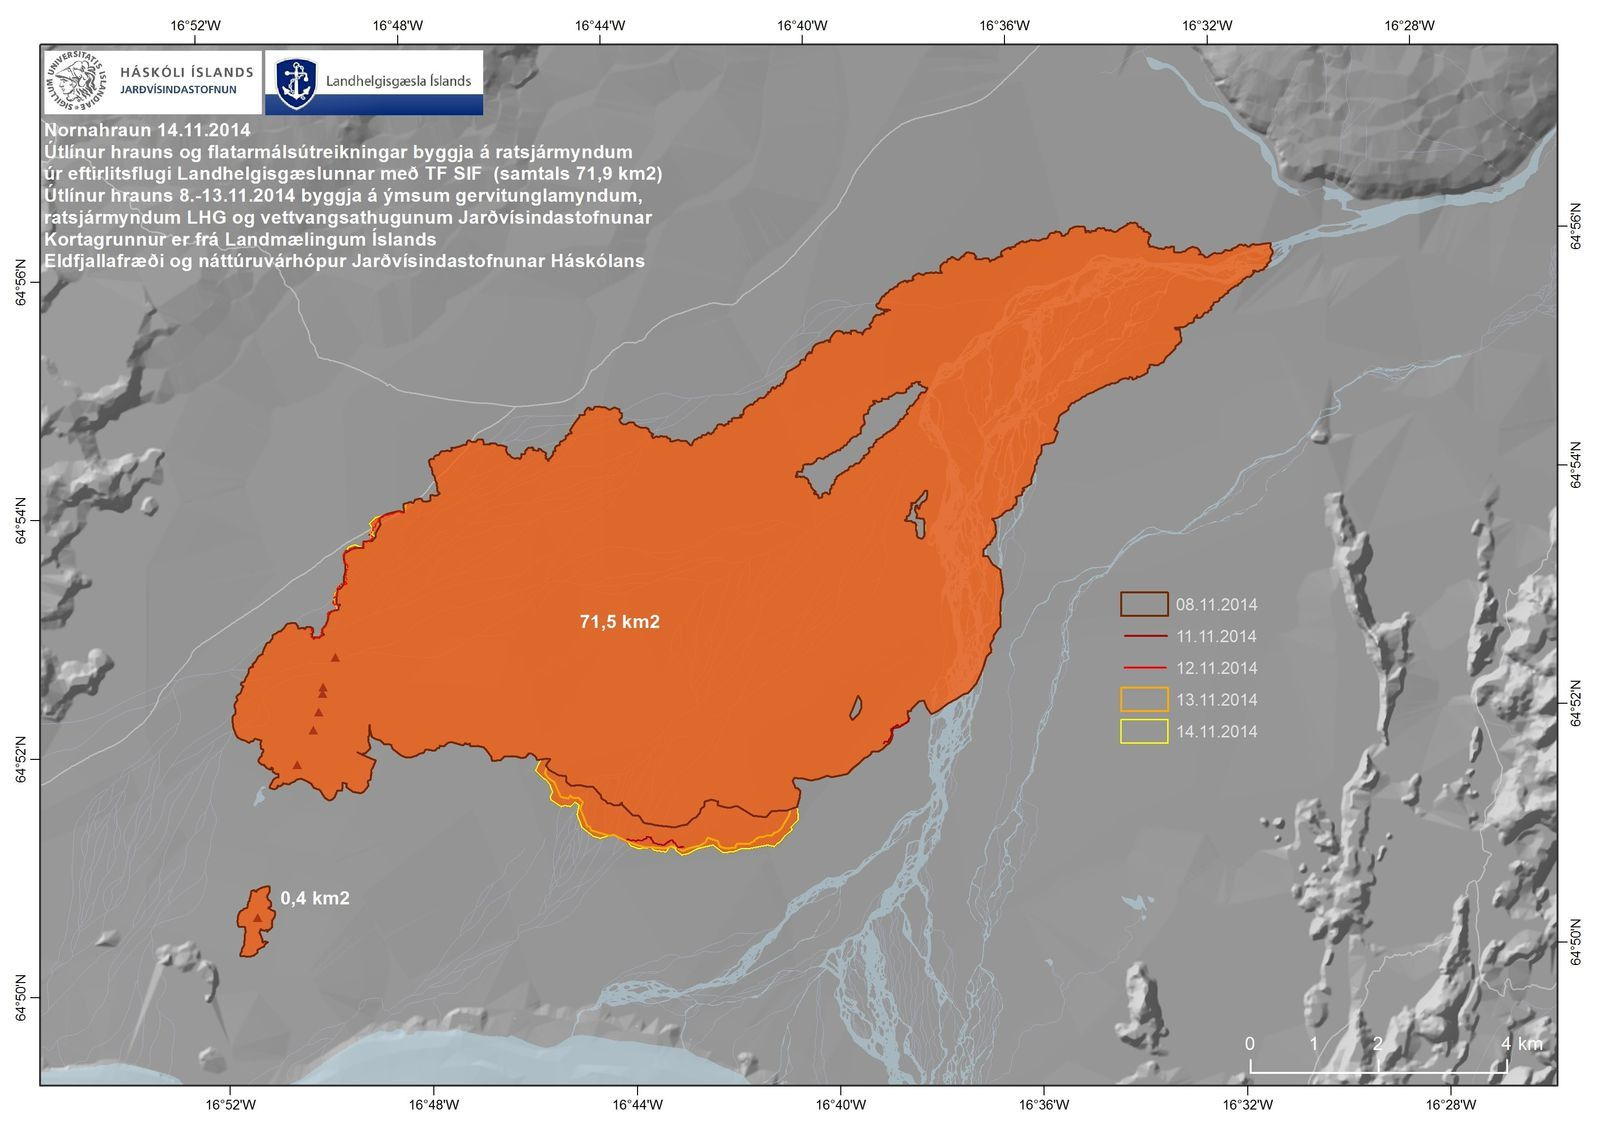 The lava field of Holuhraun - top card: 11.14.2014 / IMO - image below: 11.16.2014 / NASA Landsat 8 / NASA-USGS